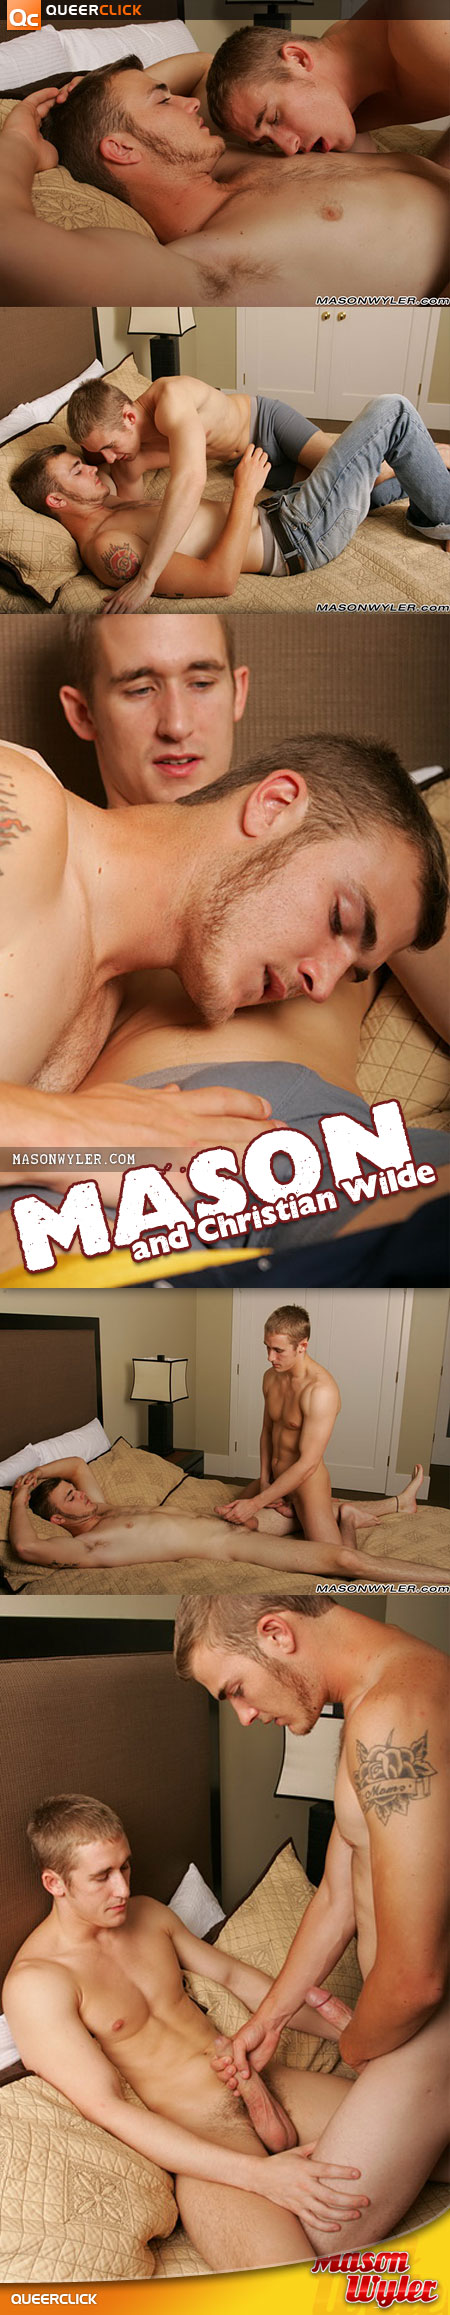 Mason Wyler: Mason and Christian Wilde